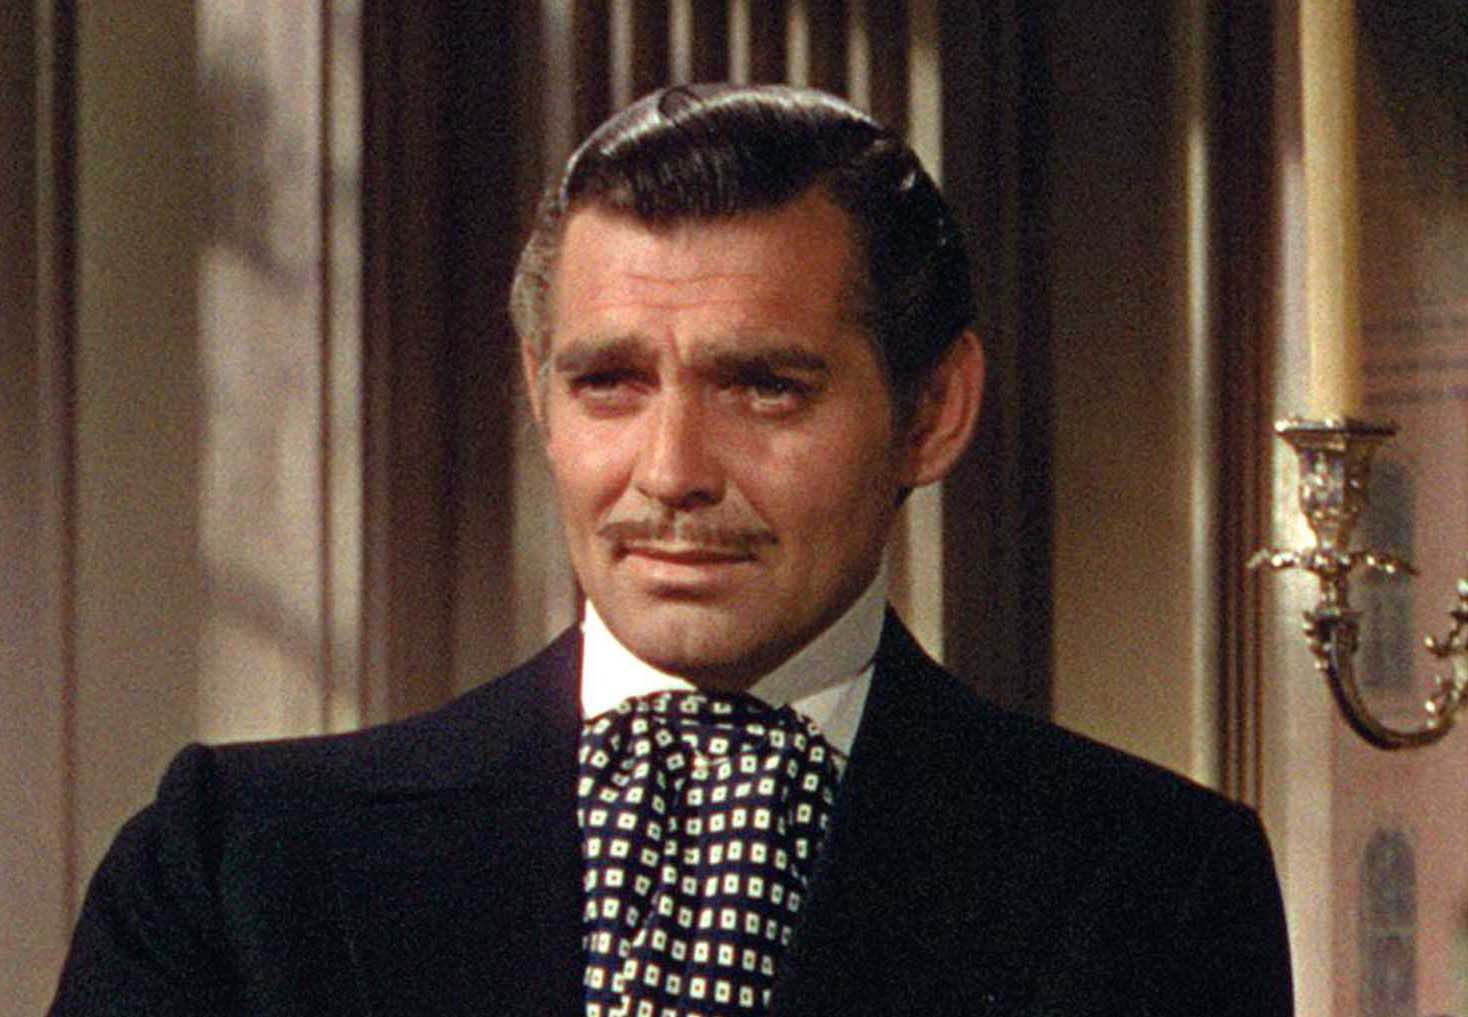 Clark Gable, The king of Hollywood